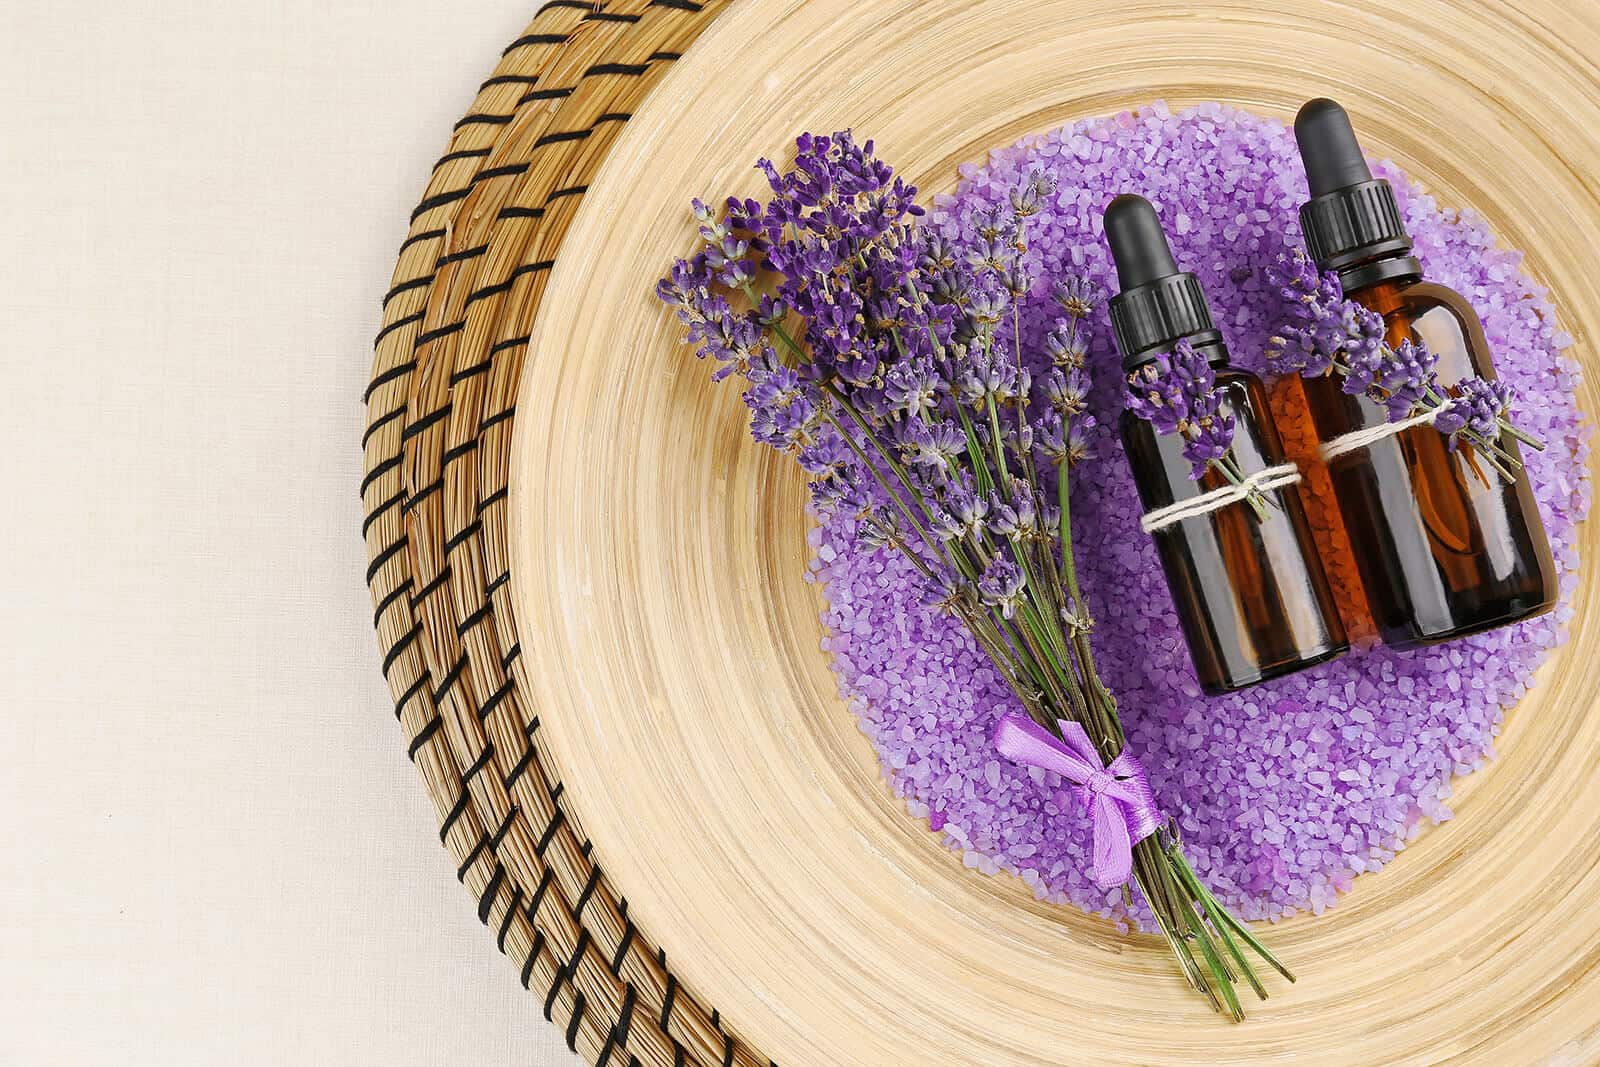 Cases and displays for Essential oils